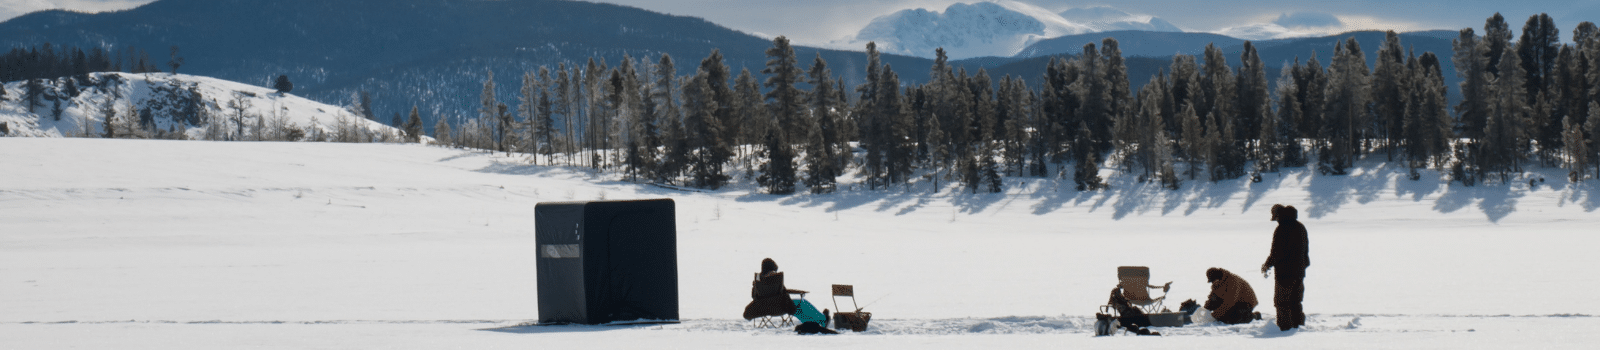 10 Best Ice Fishing Shelter Heaters